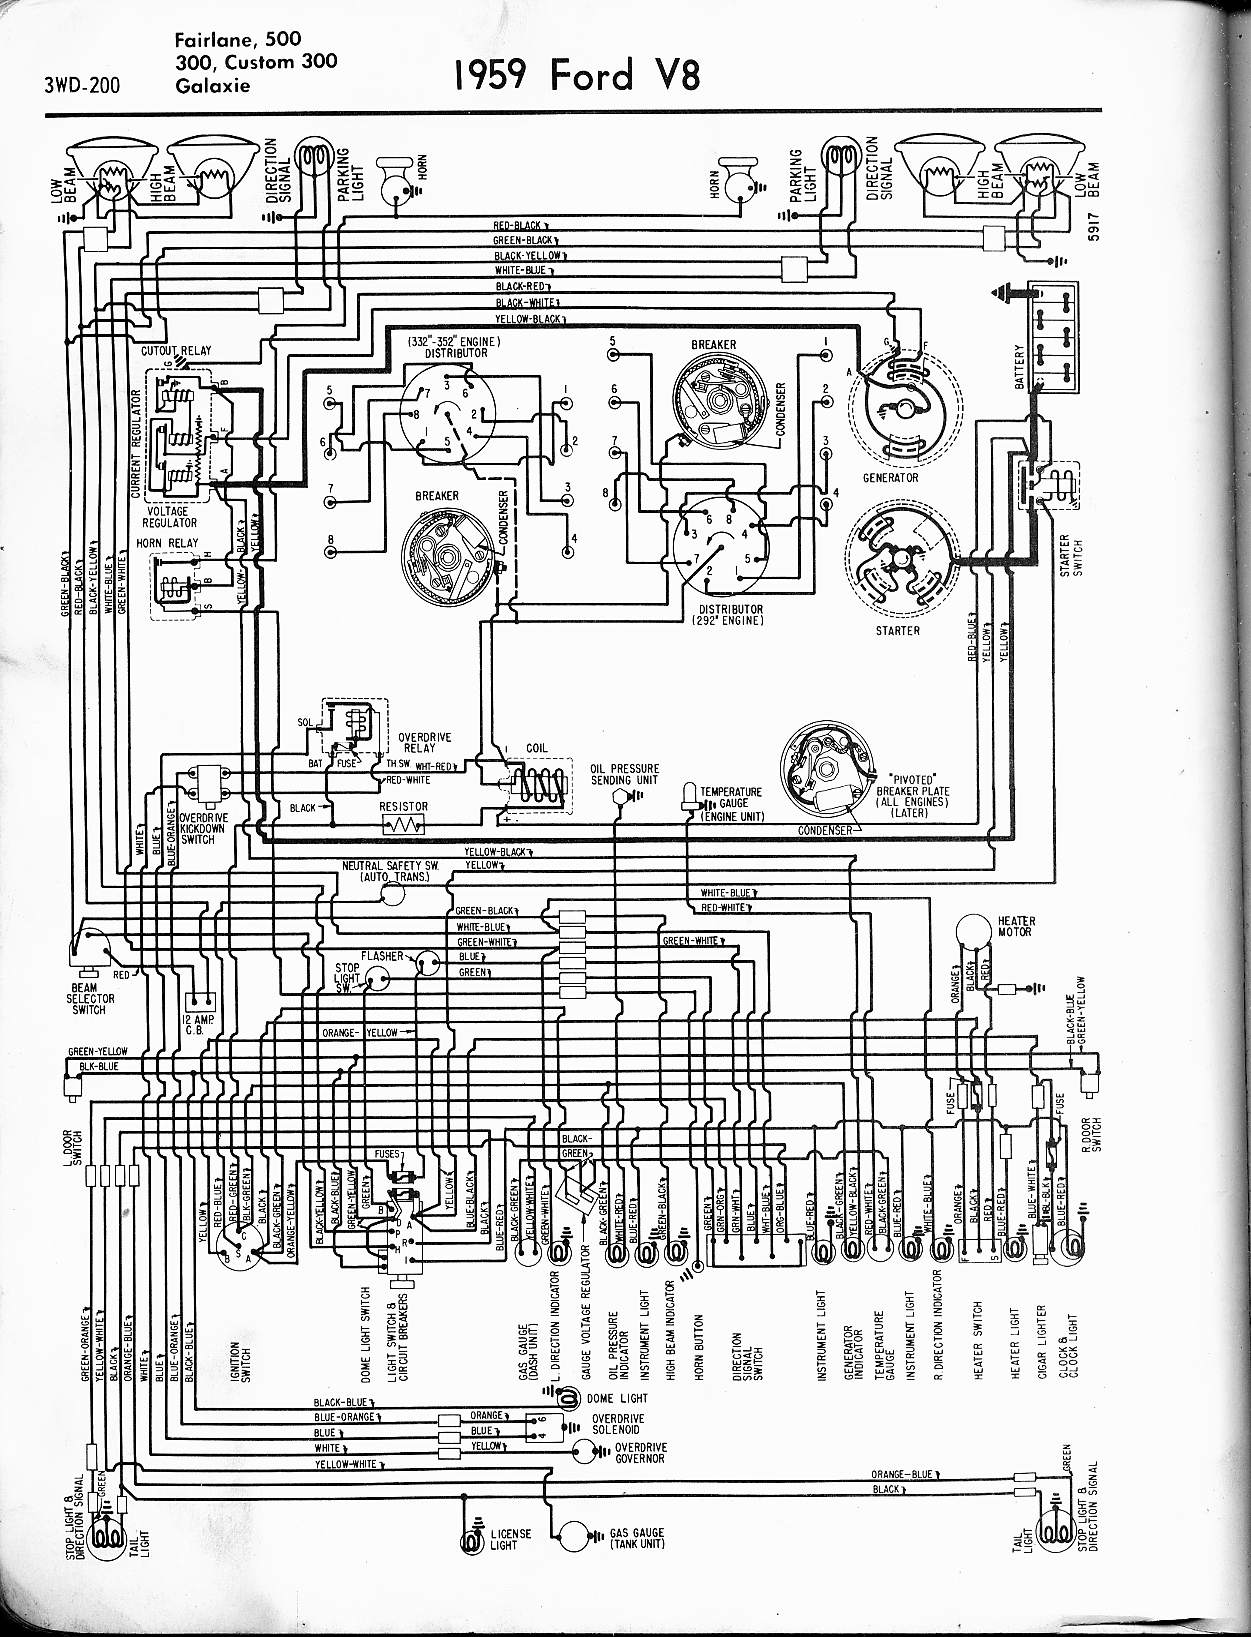 MWire5765 200 57 65 ford wiring diagrams 1969 ford f100 steering column wiring diagram at gsmportal.co